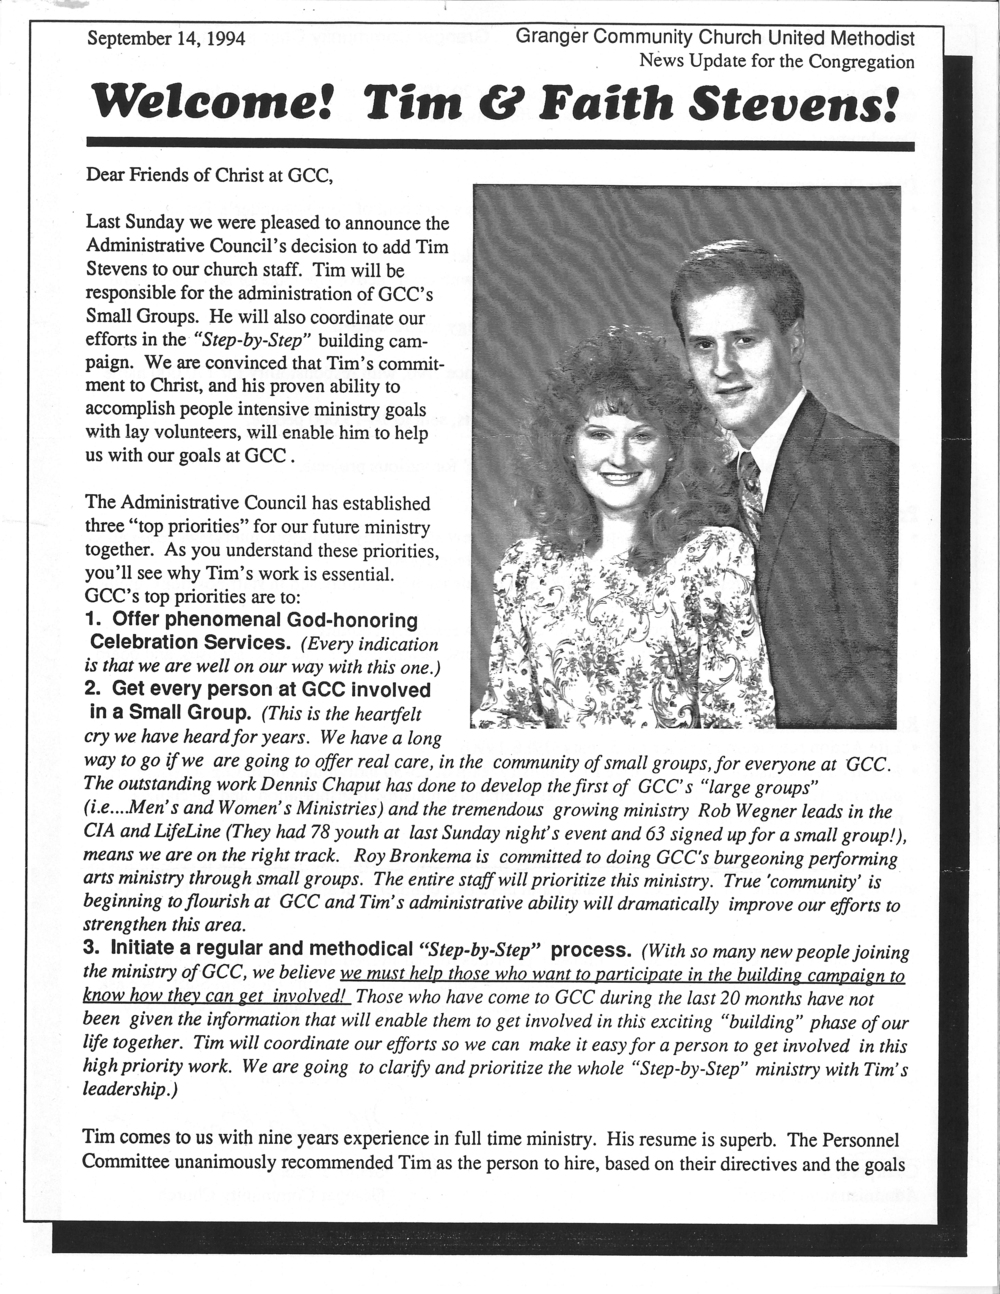 Granger Community Church newsletter from September 14, 1994